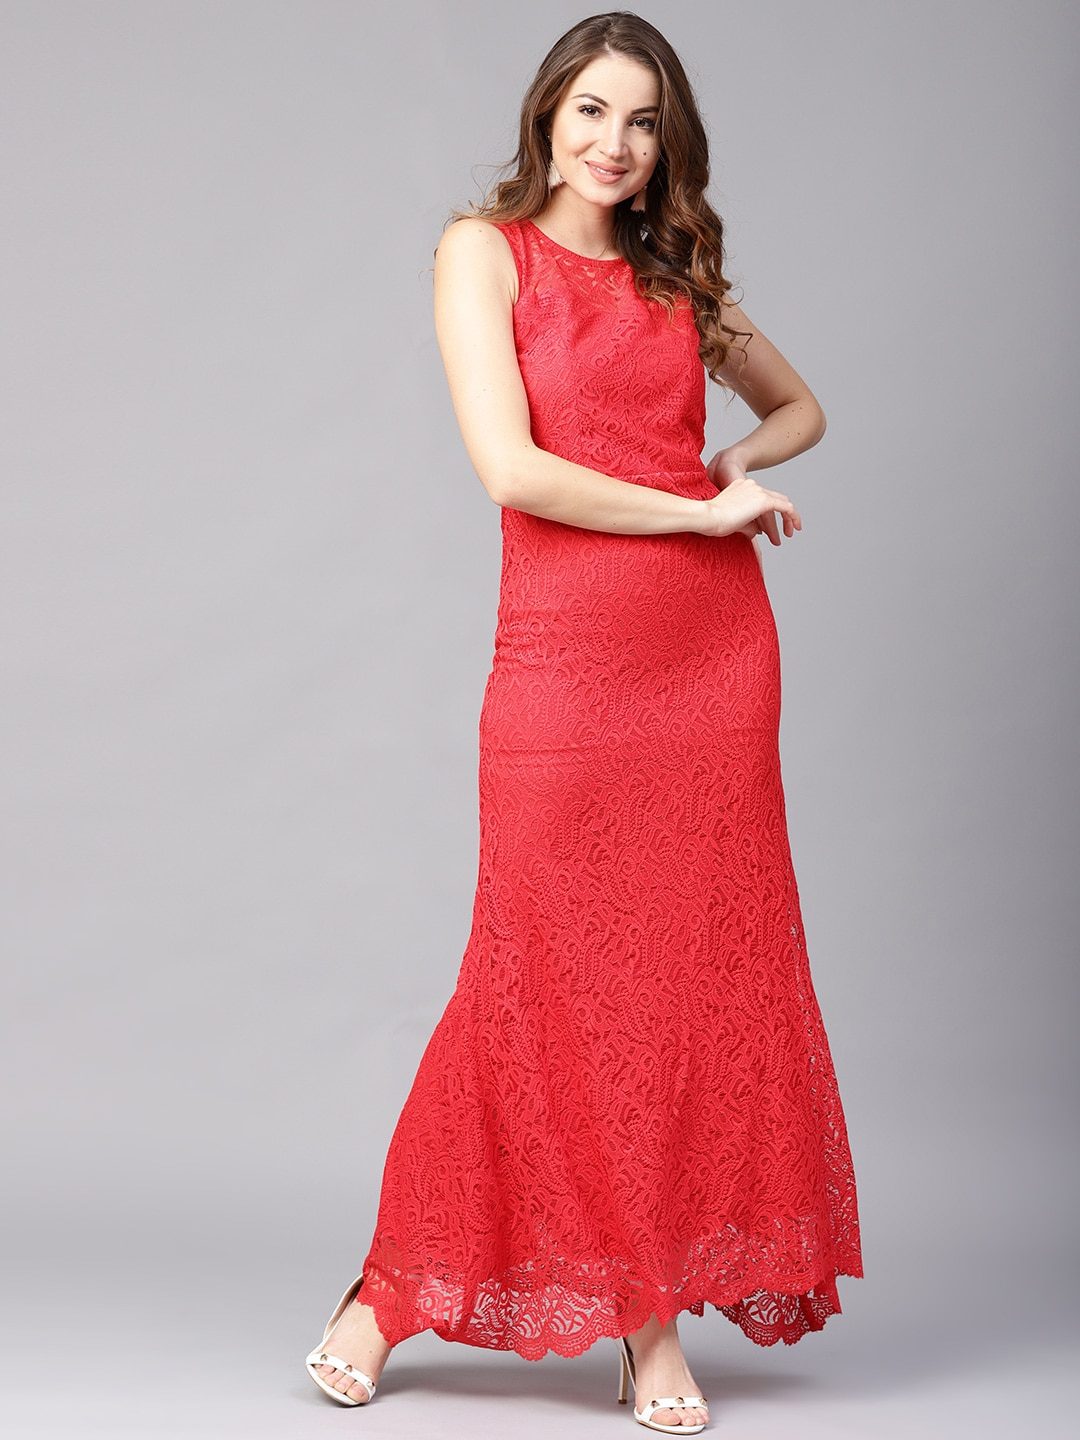 Red Lady Dress